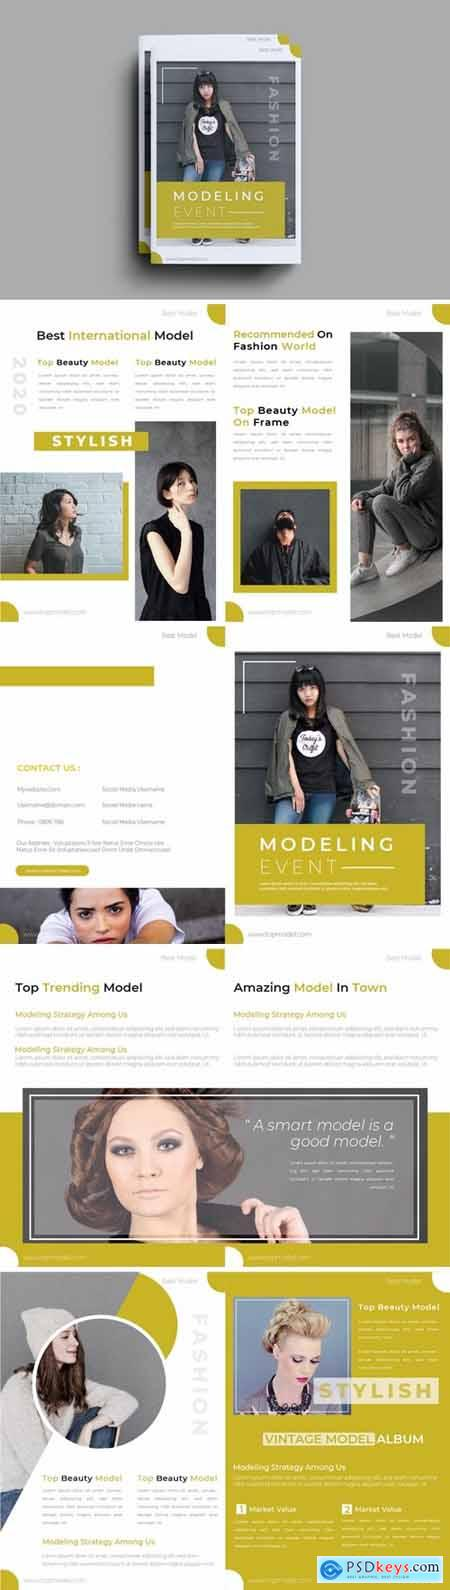 Modeling Event Brochure Template